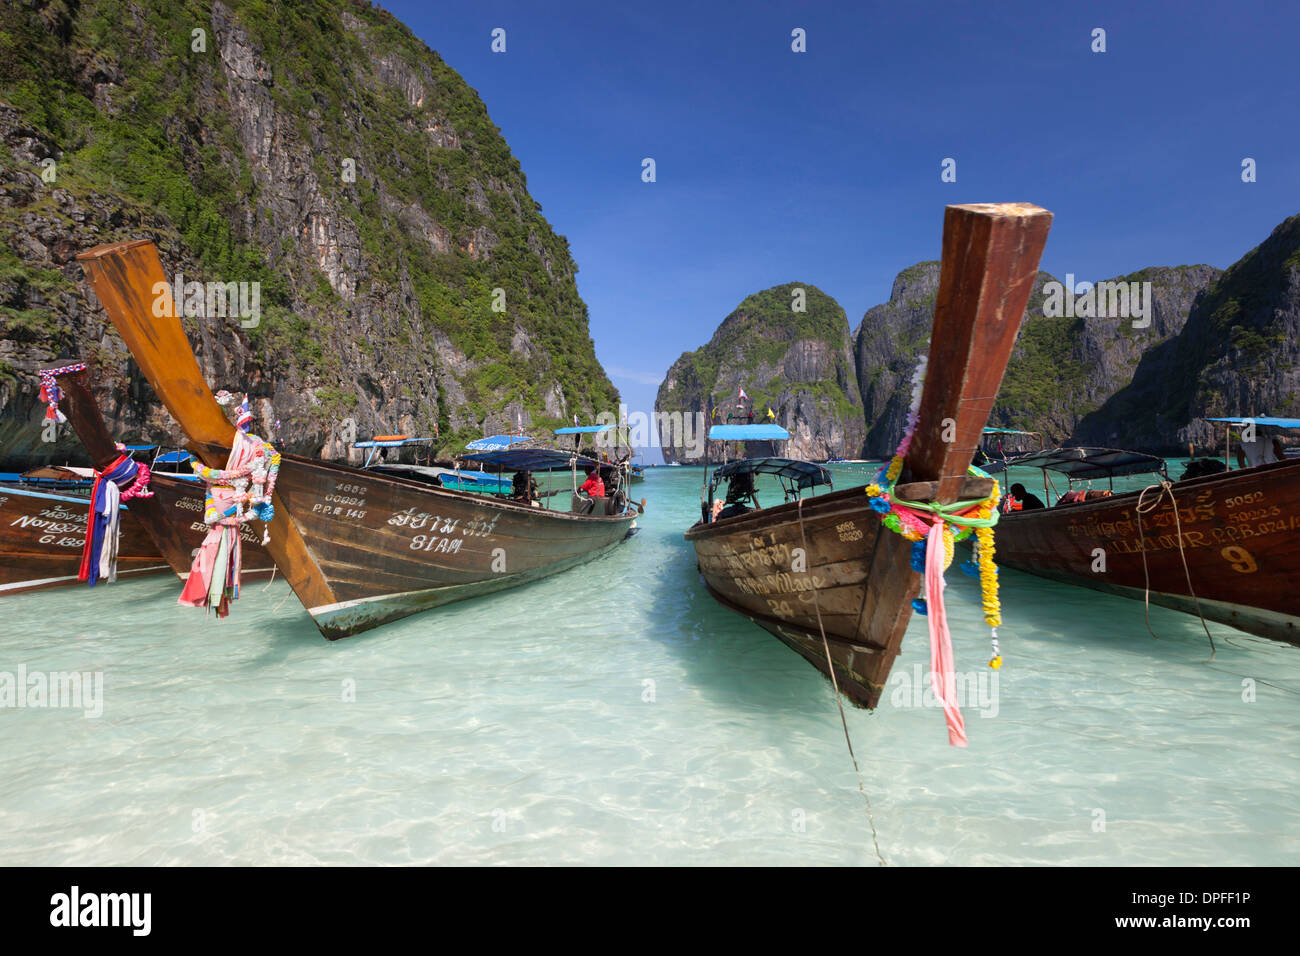 Maya Bay with long-tail boats, Phi Phi Lay, Krabi Province, Thailand, Southeast Asia, Asia - Stock Image